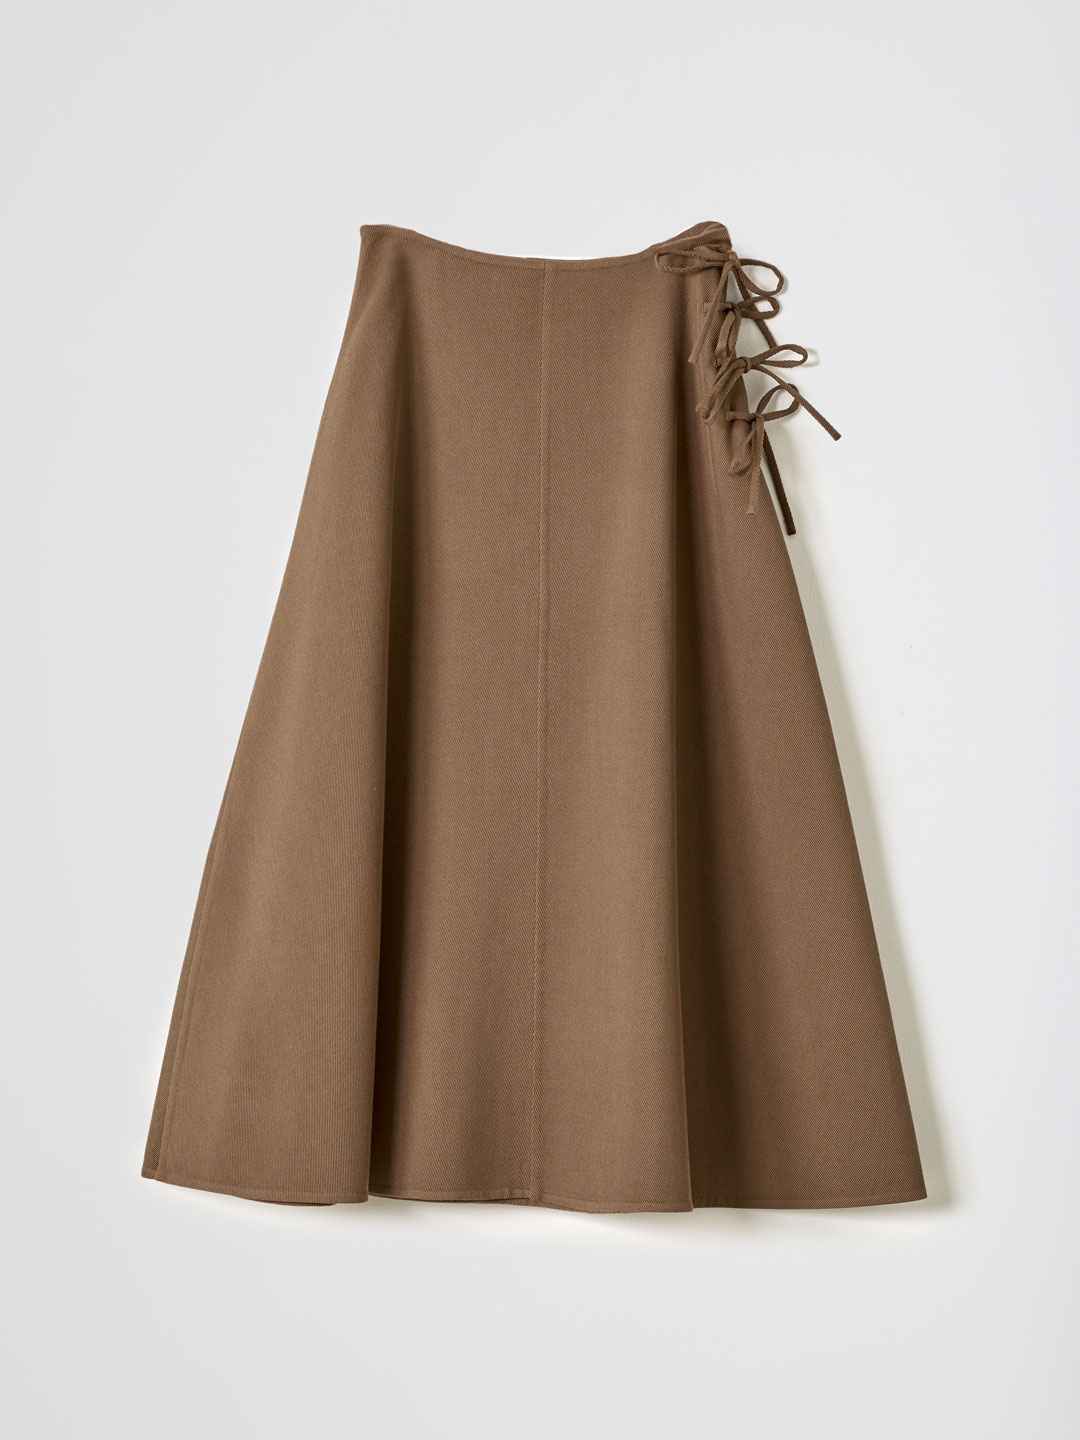 No 0172 Dry Wool Rever Knot Skirt - Brown